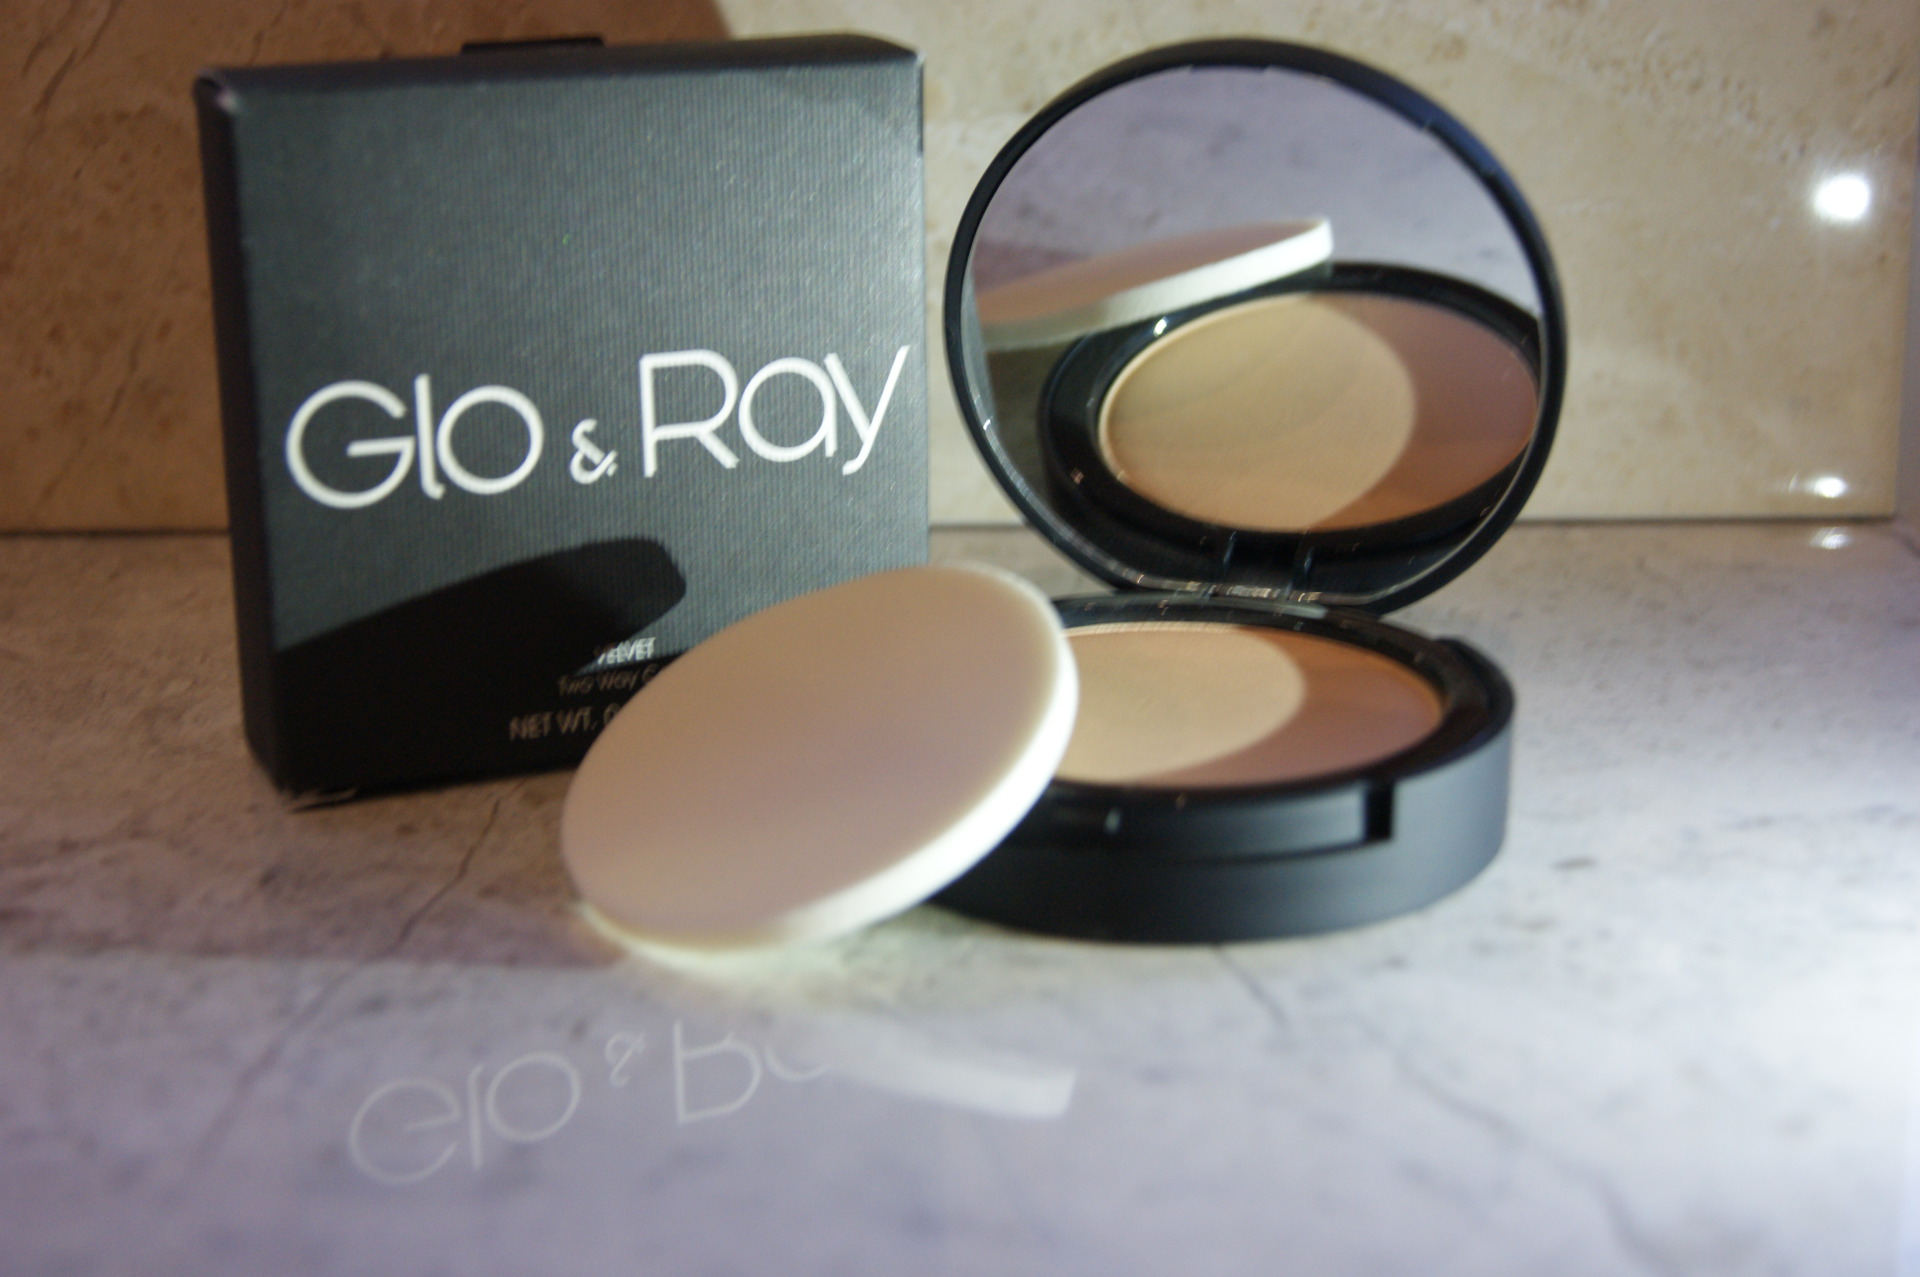 Glo & Ray - Compact Powder - Velvet Two-Way Cake